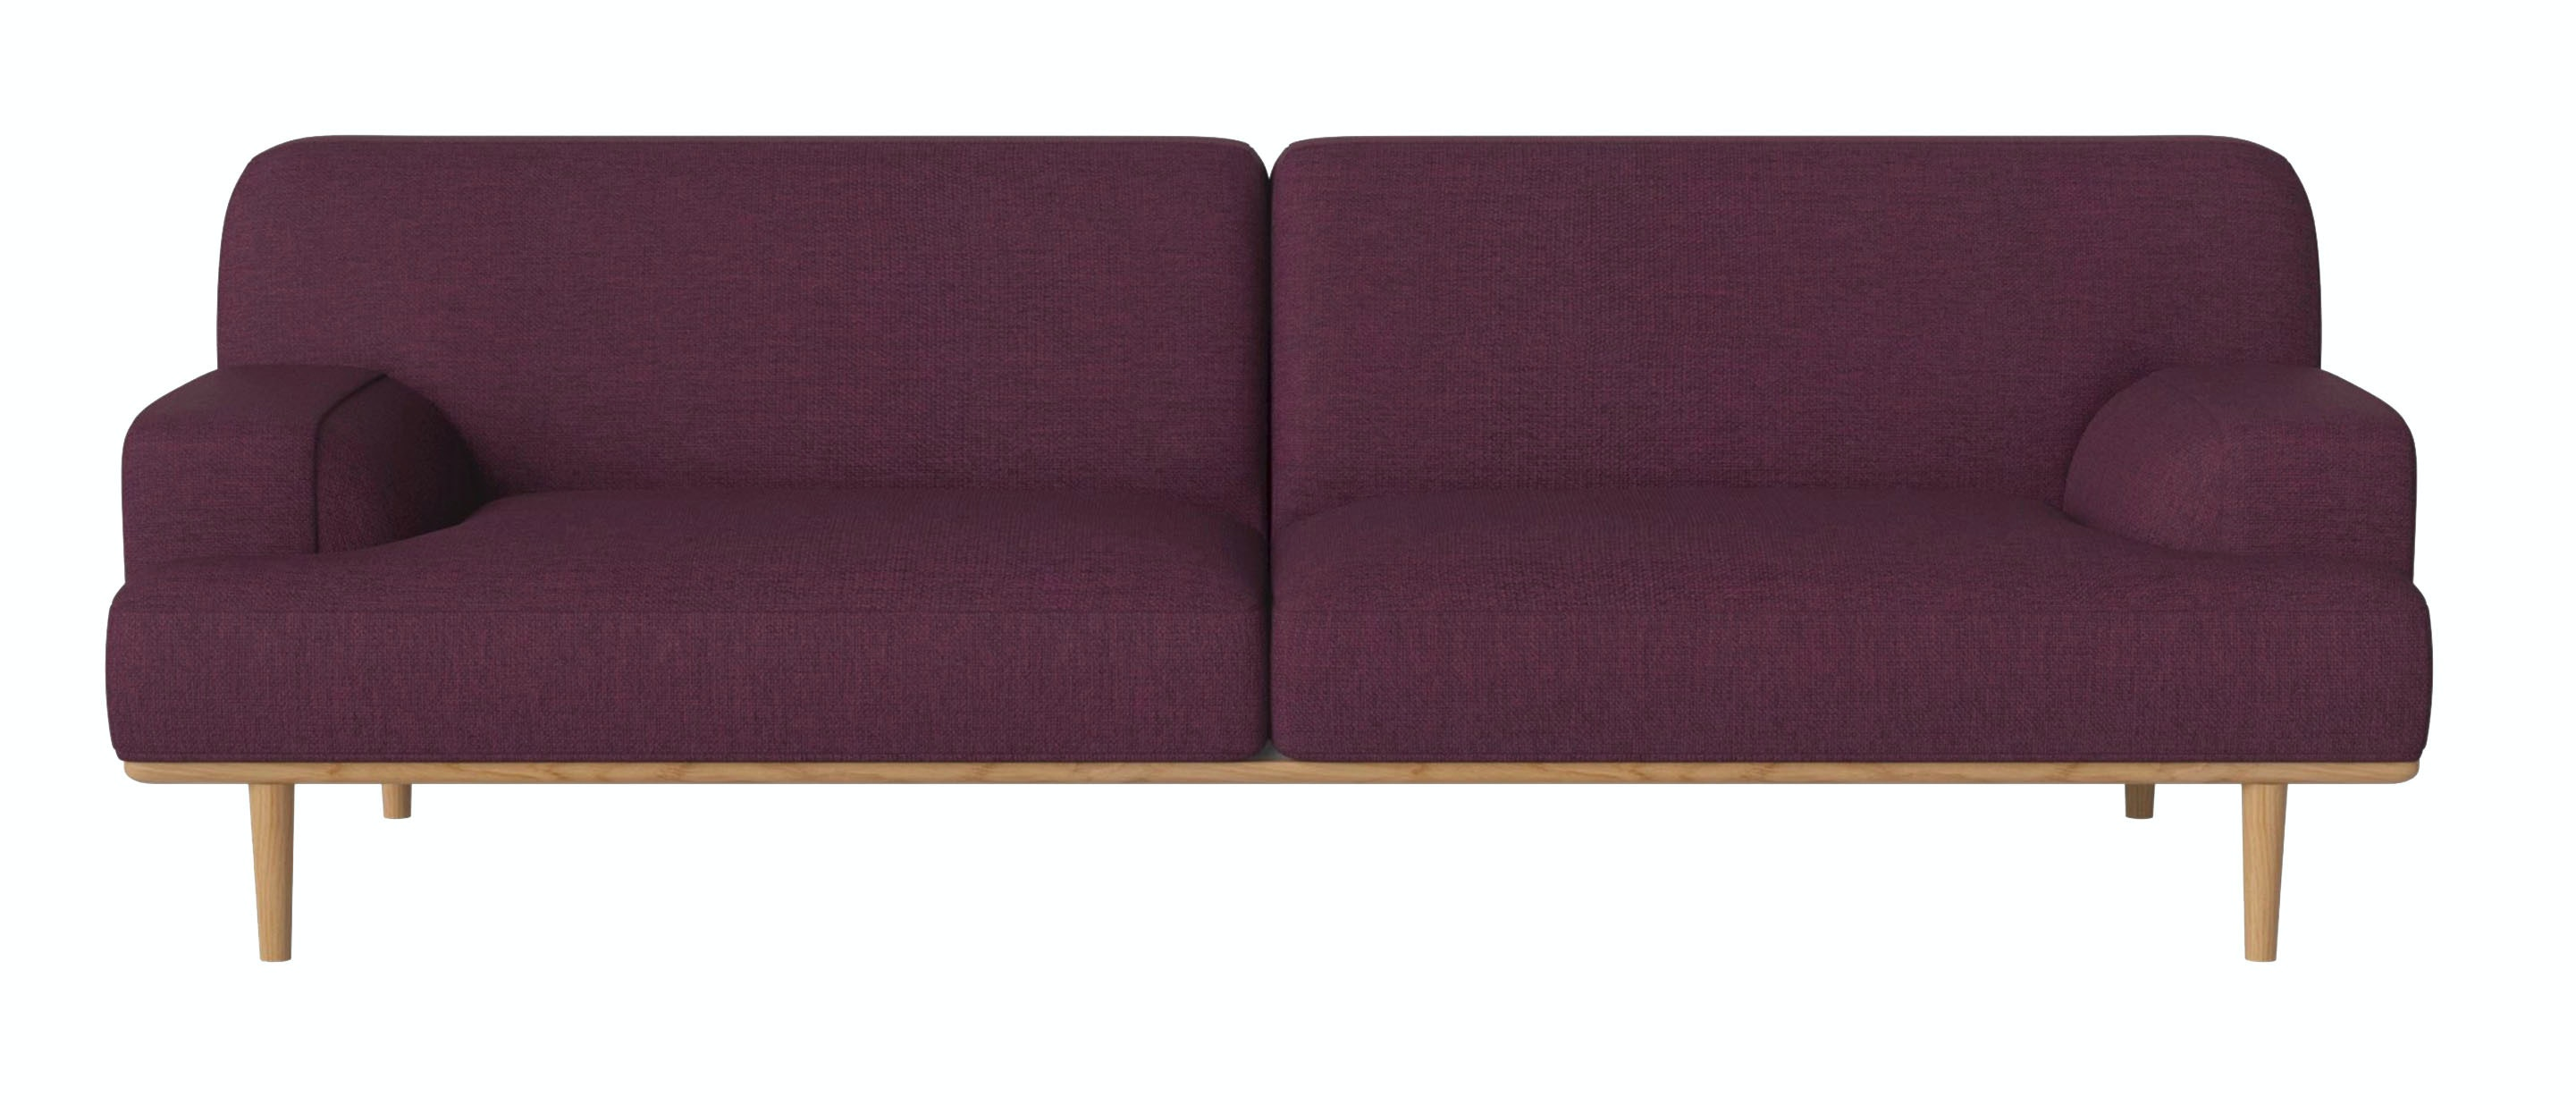 Madison Sofa Bolia Haute Living Copy